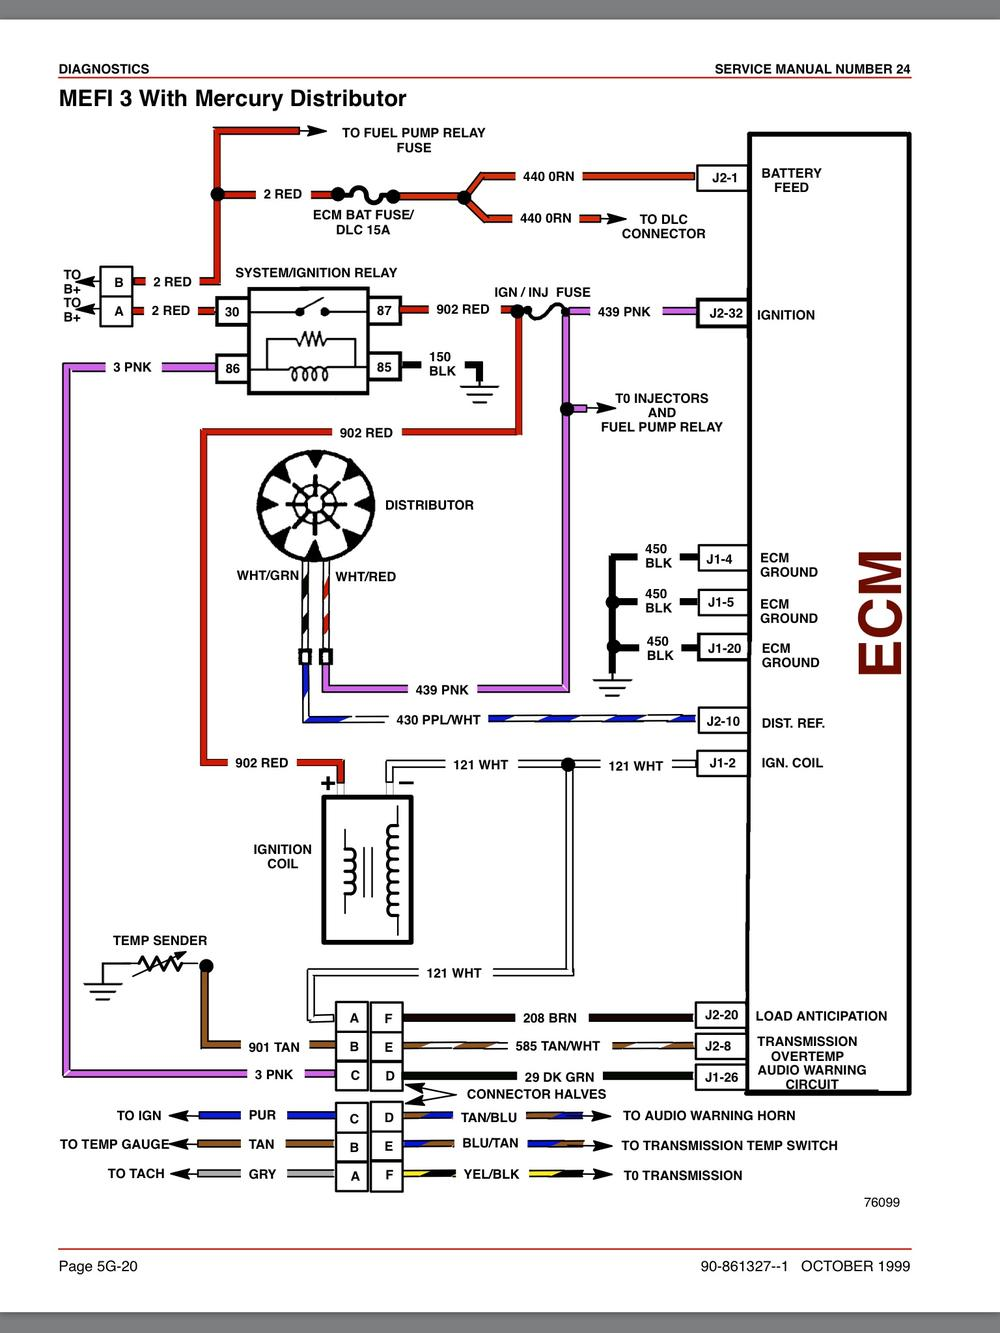 5 7 chevy wiring diagram - wiring diagrams site-script-a -  site-script-a.mumblestudio.it  mumblestudio.it